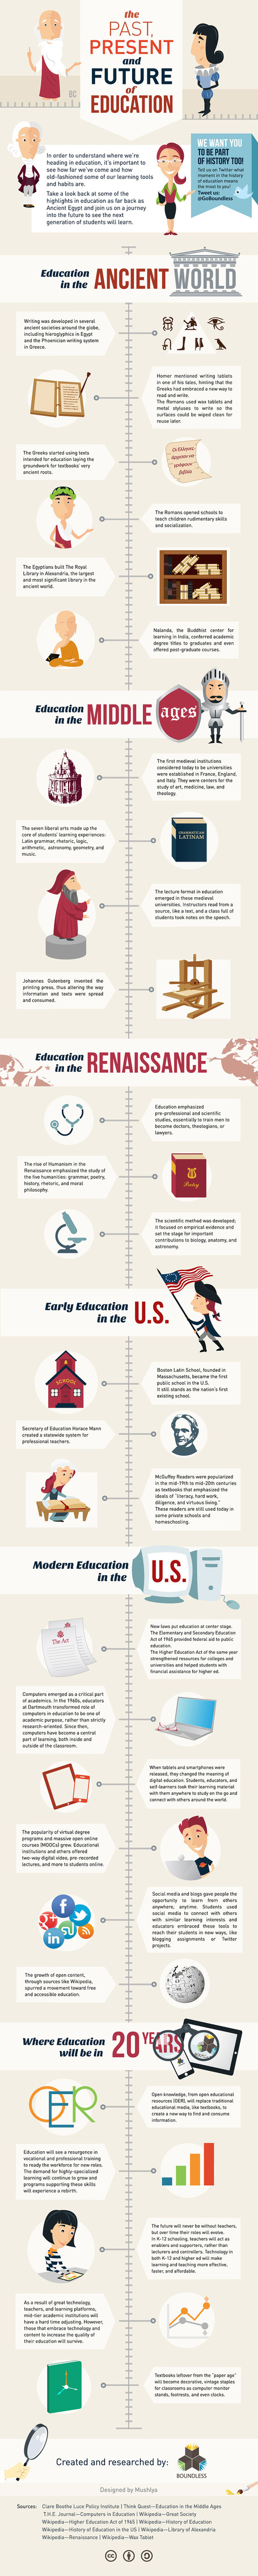 Infographic: The History of Education | Social Media Resources & e-learning | Scoop.it